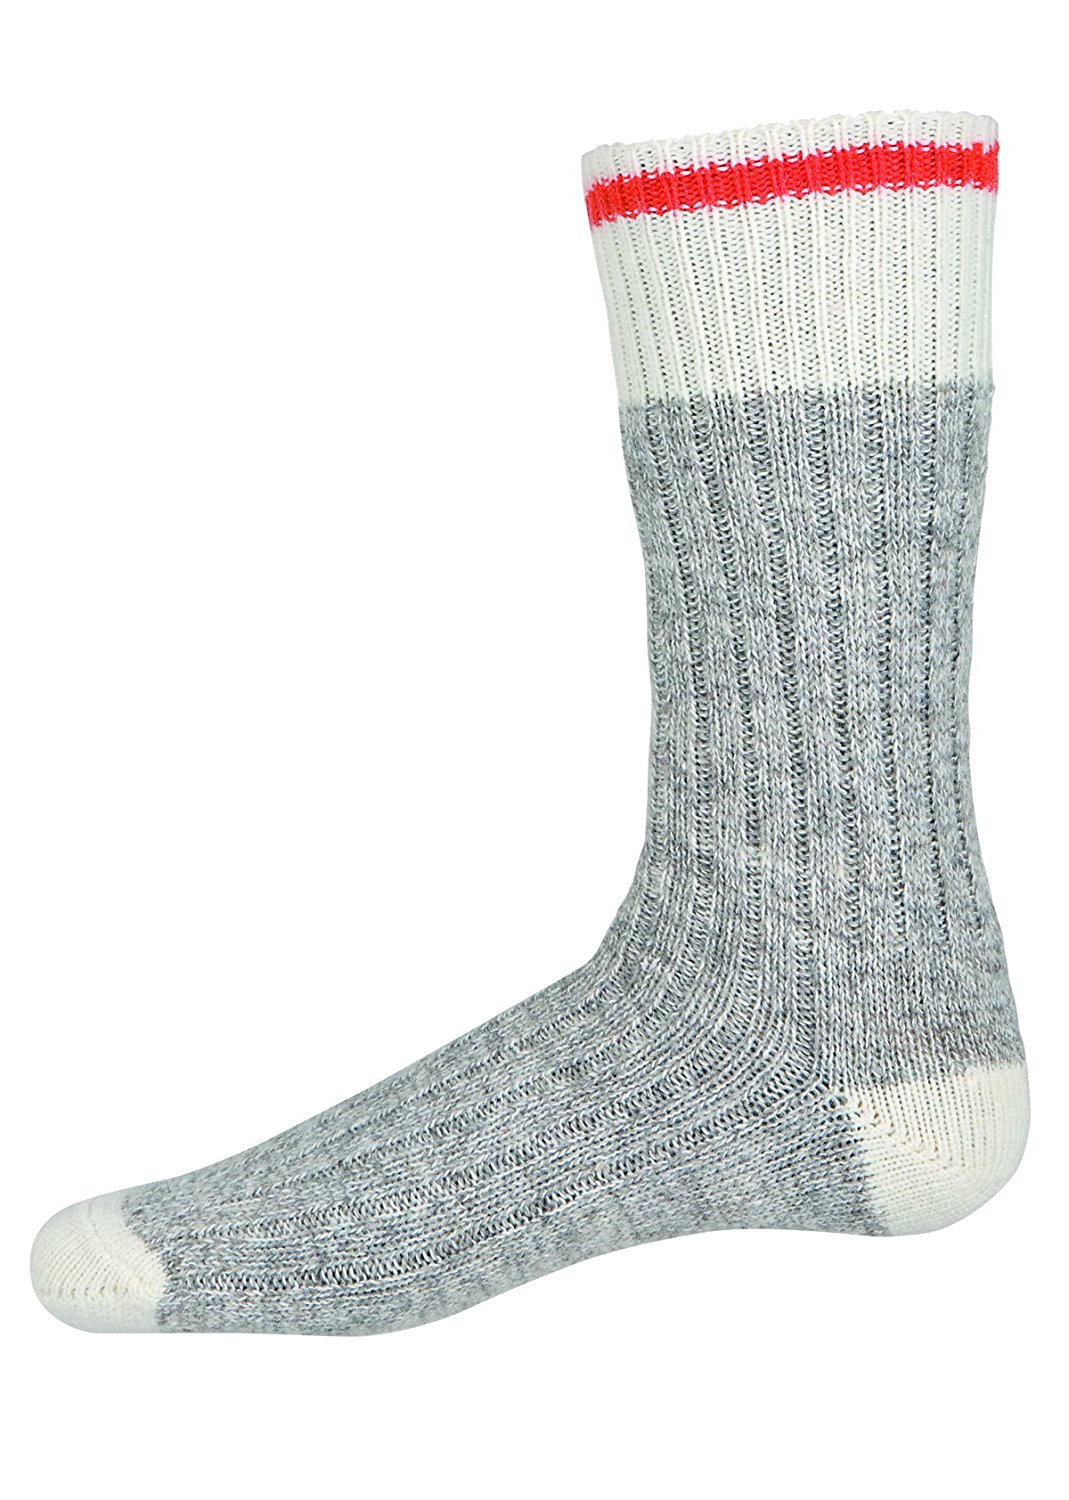 MEGAComfort® MEGASock™ Men's Grey Industrial Work Socks